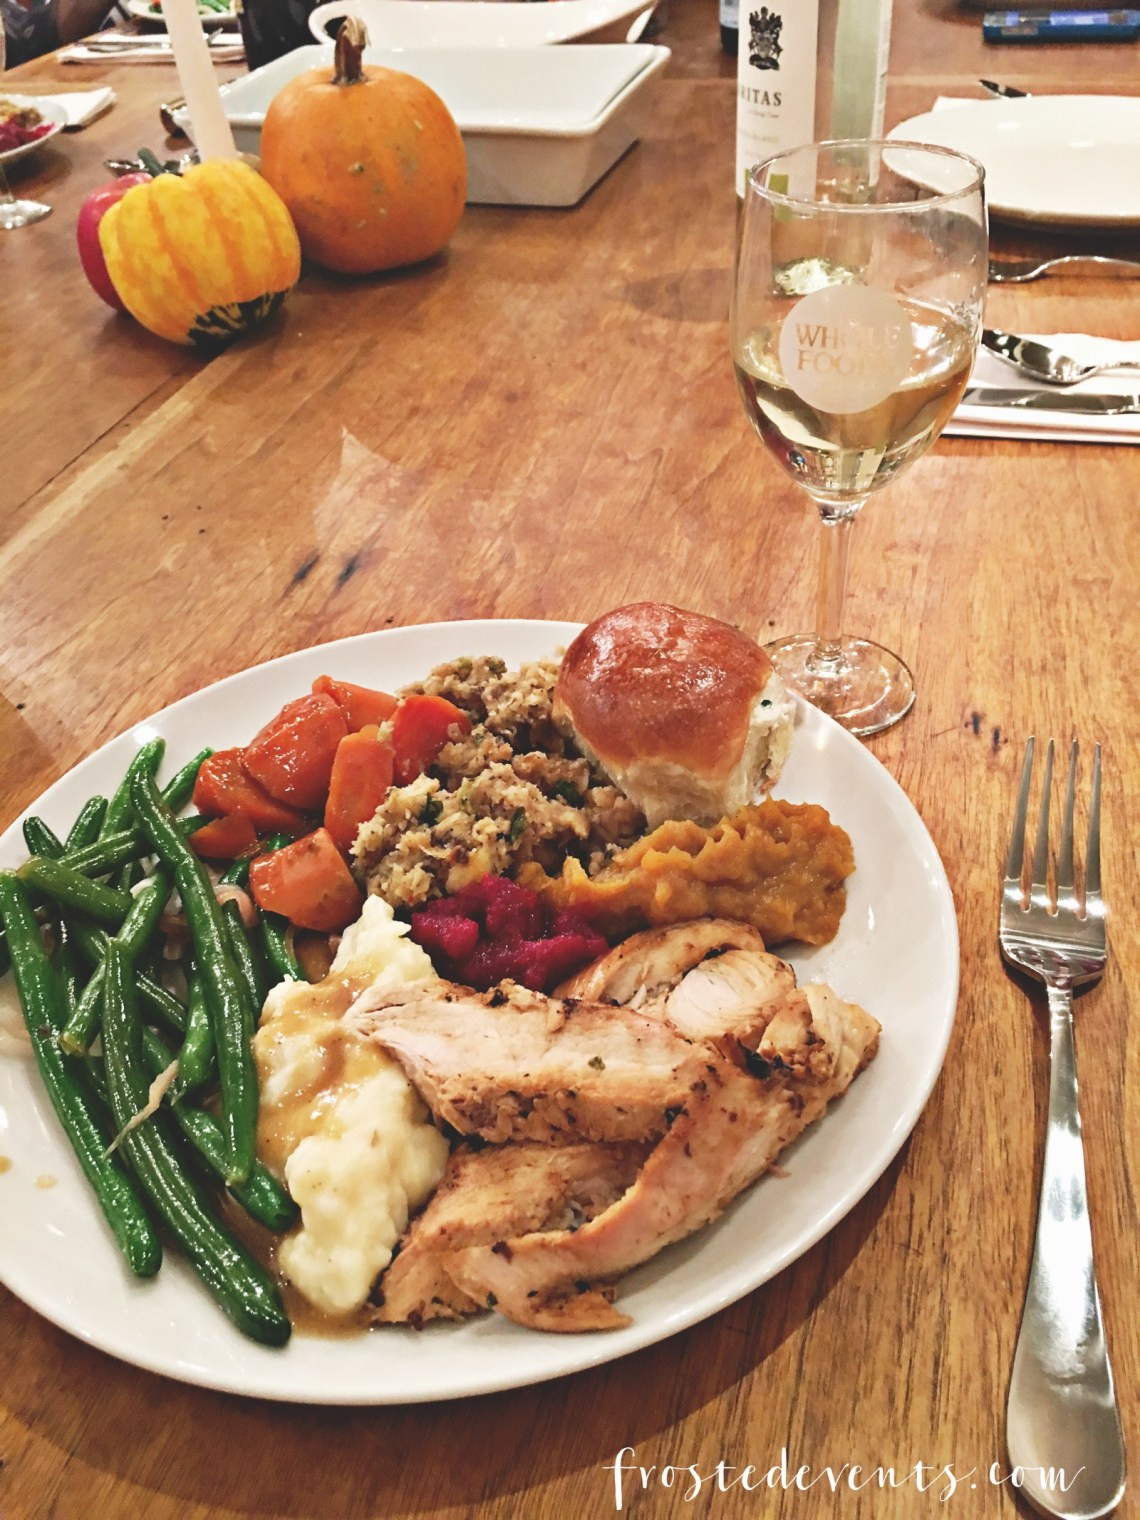 Whole Foods Turkey Dinner  Thanksgiving Dinner Turkey Tablescape and More with Whole